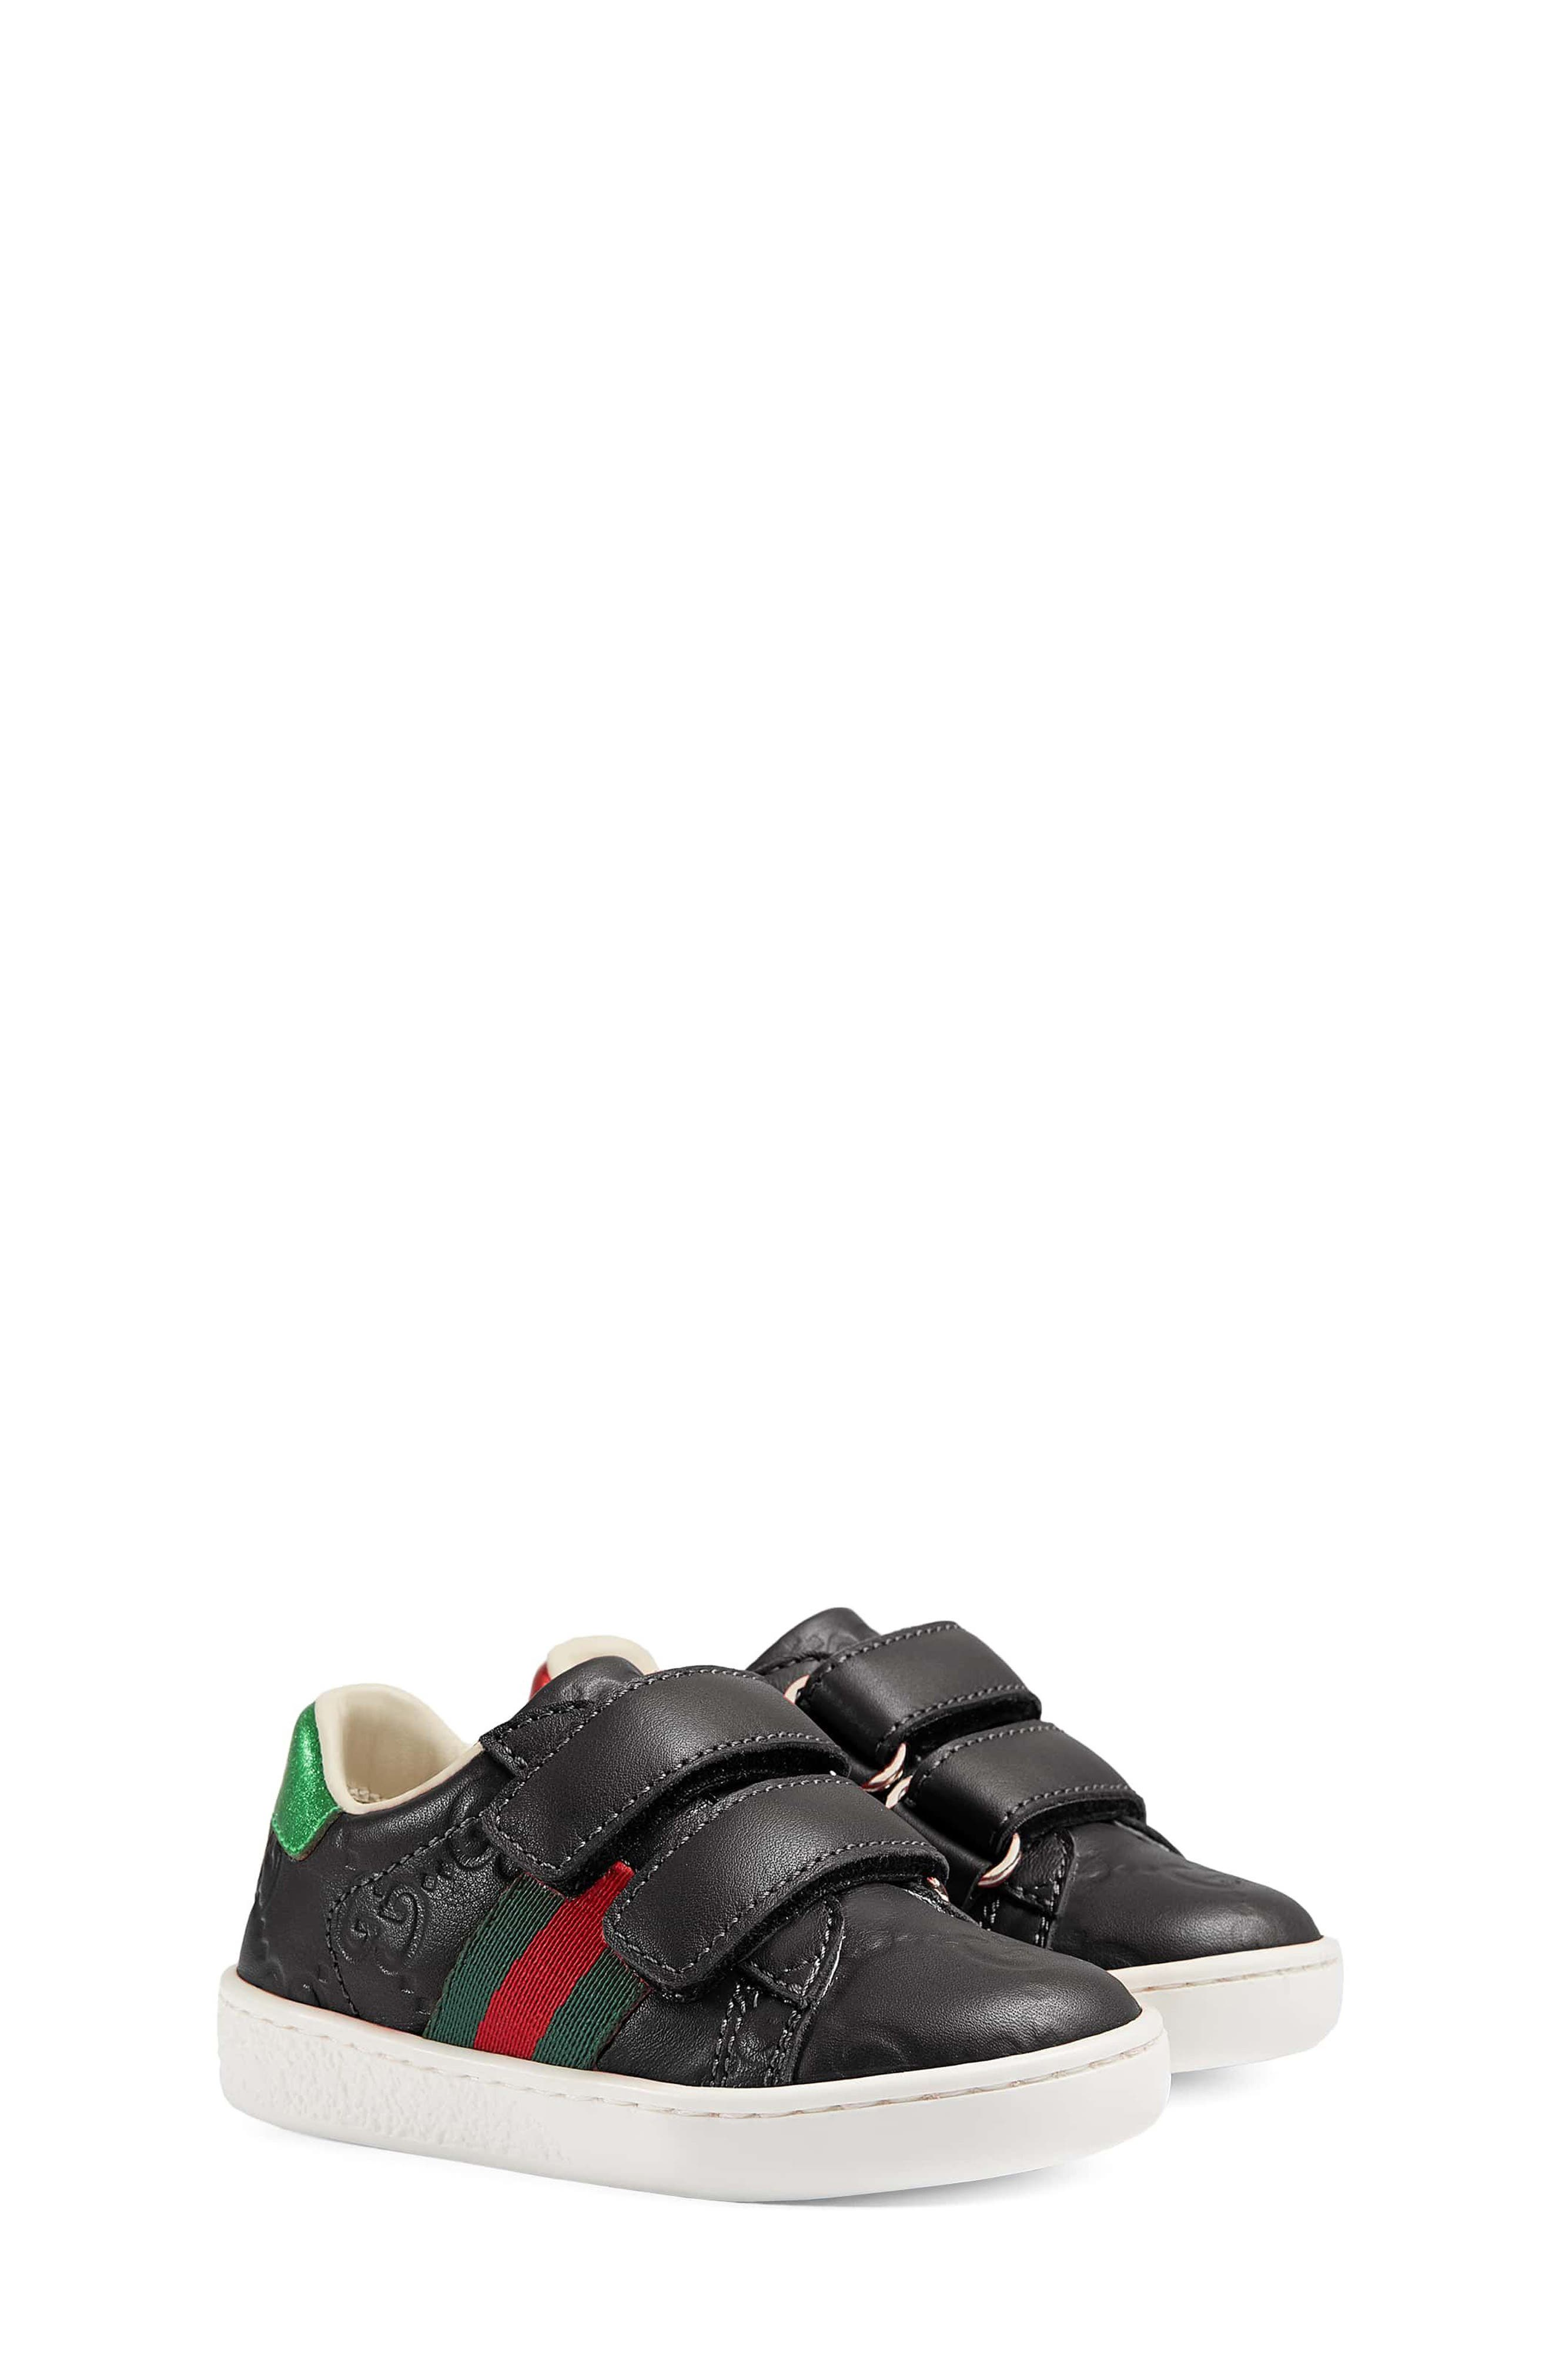 Gucci New Ace Sneaker (Baby, Walker & Toddler)